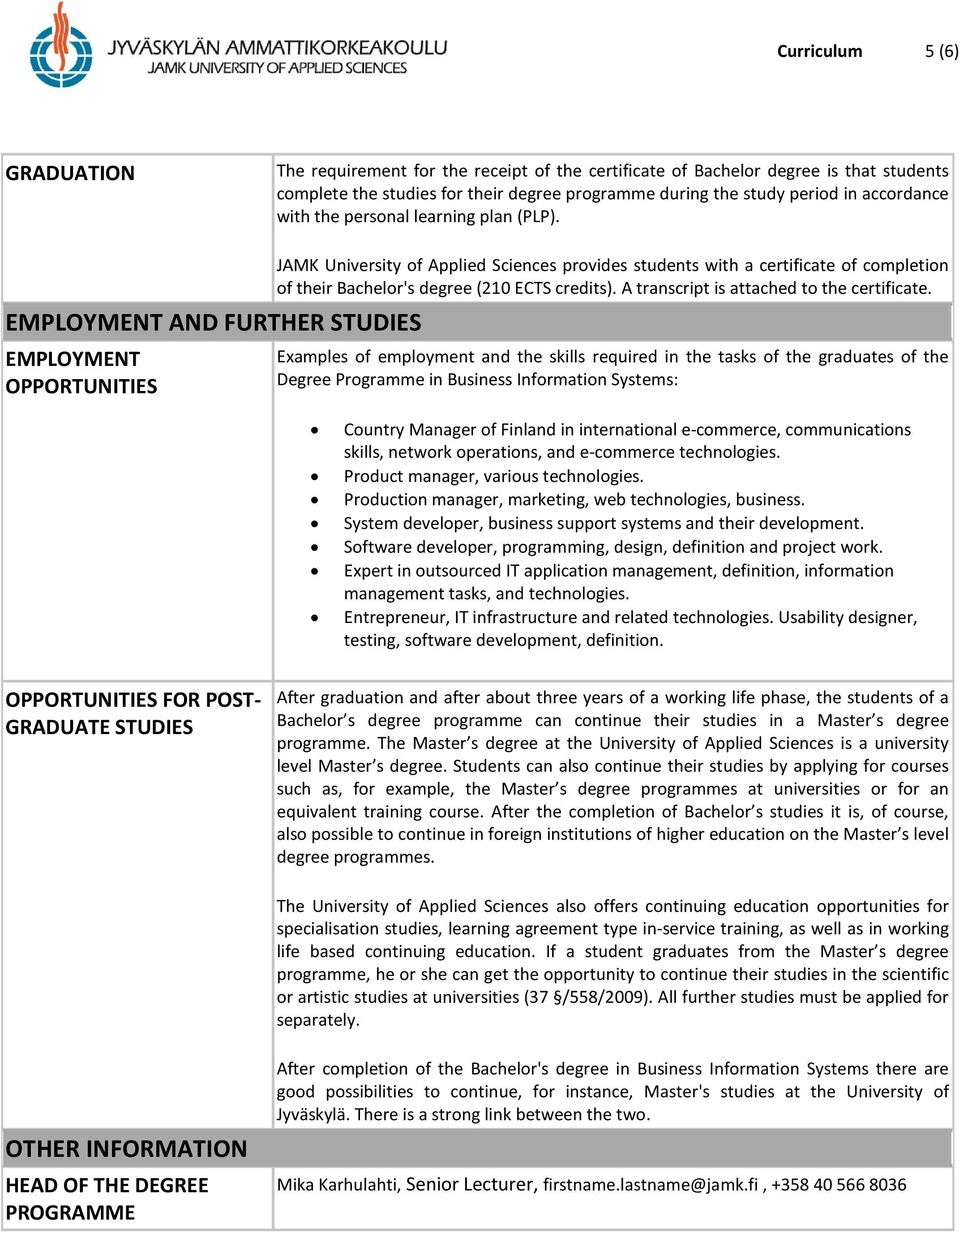 EMPLOYMENT AND FURTHER STUDIES EMPLOYMENT OPPORTUNITIES JAMK University of Applied Sciences provides students with a certificate of completion of their Bachelor's degree (210 ECTS credits).